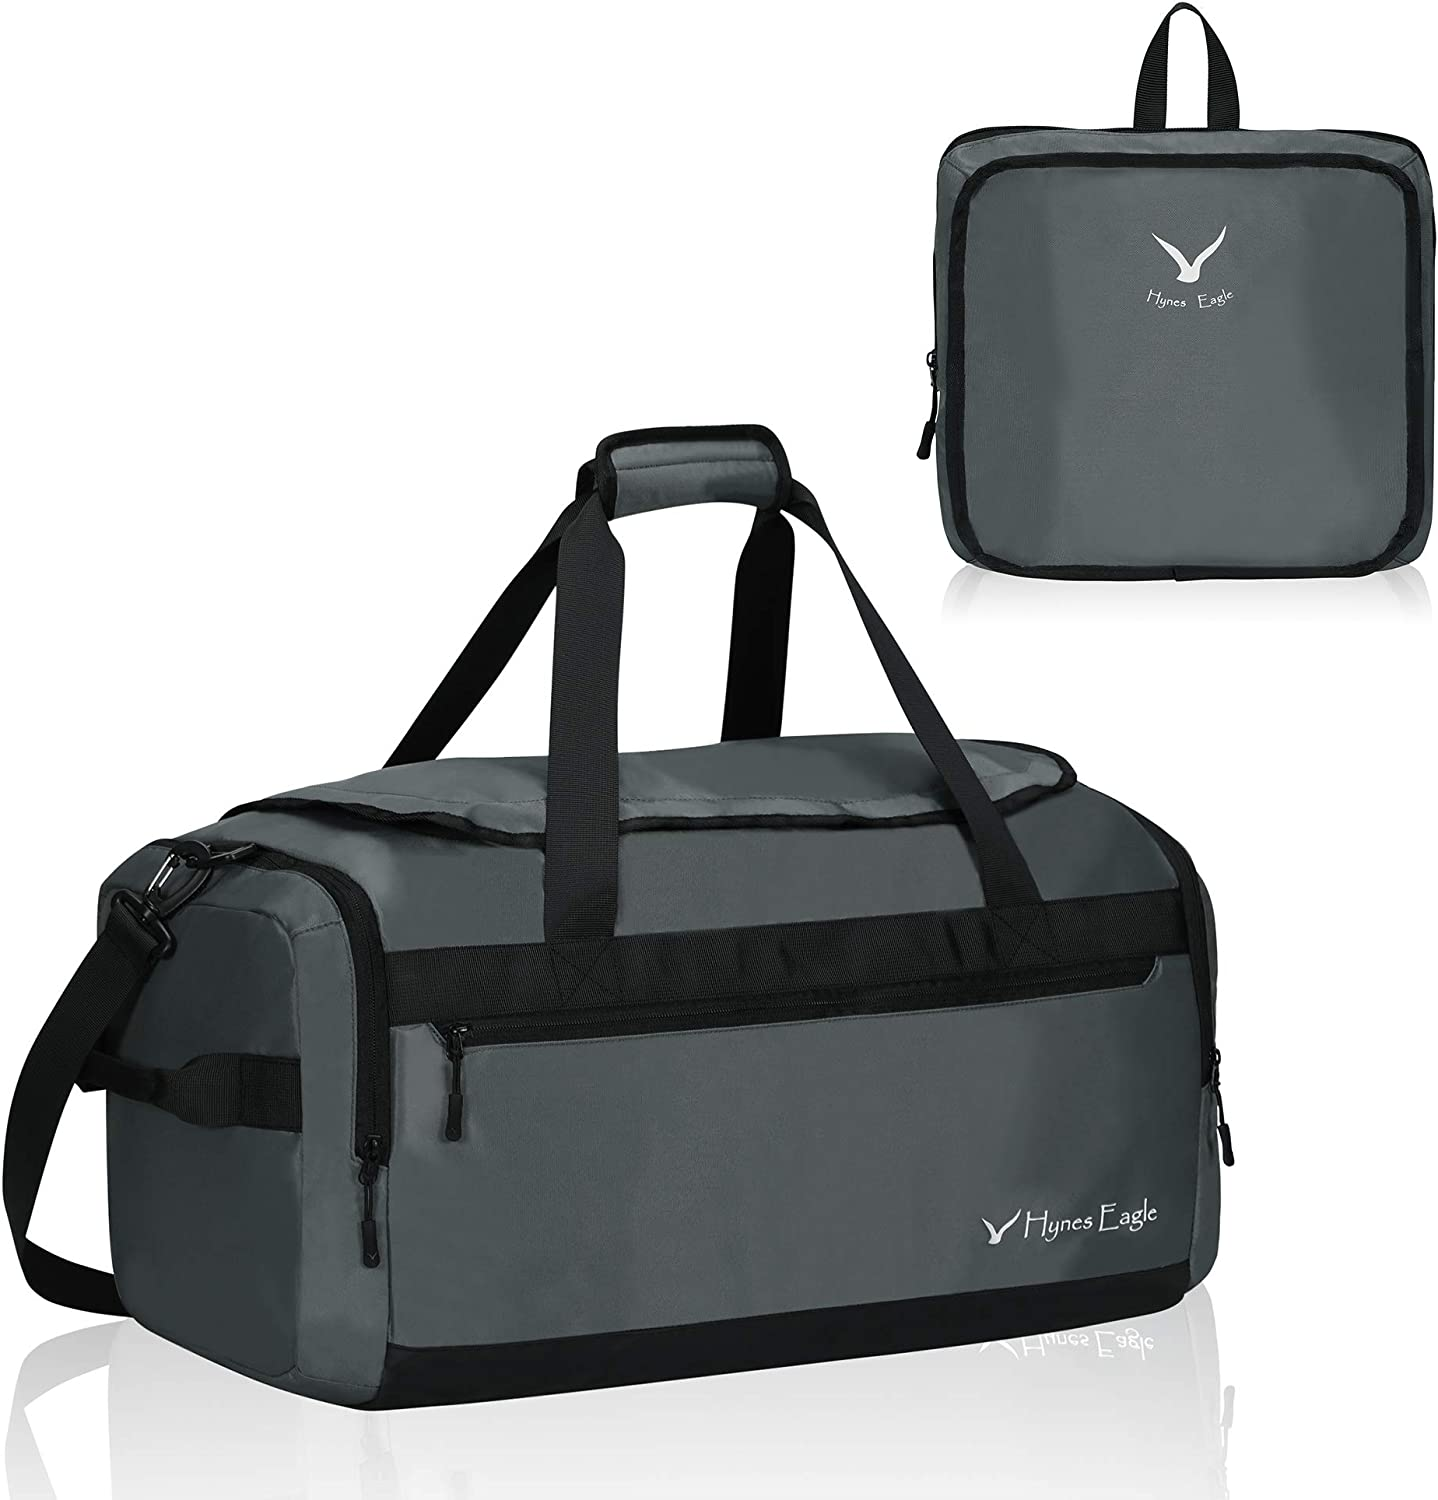 Eagle Sports Gym Bag with Shoes Compartment Travel Duffel Bag for Men and Women